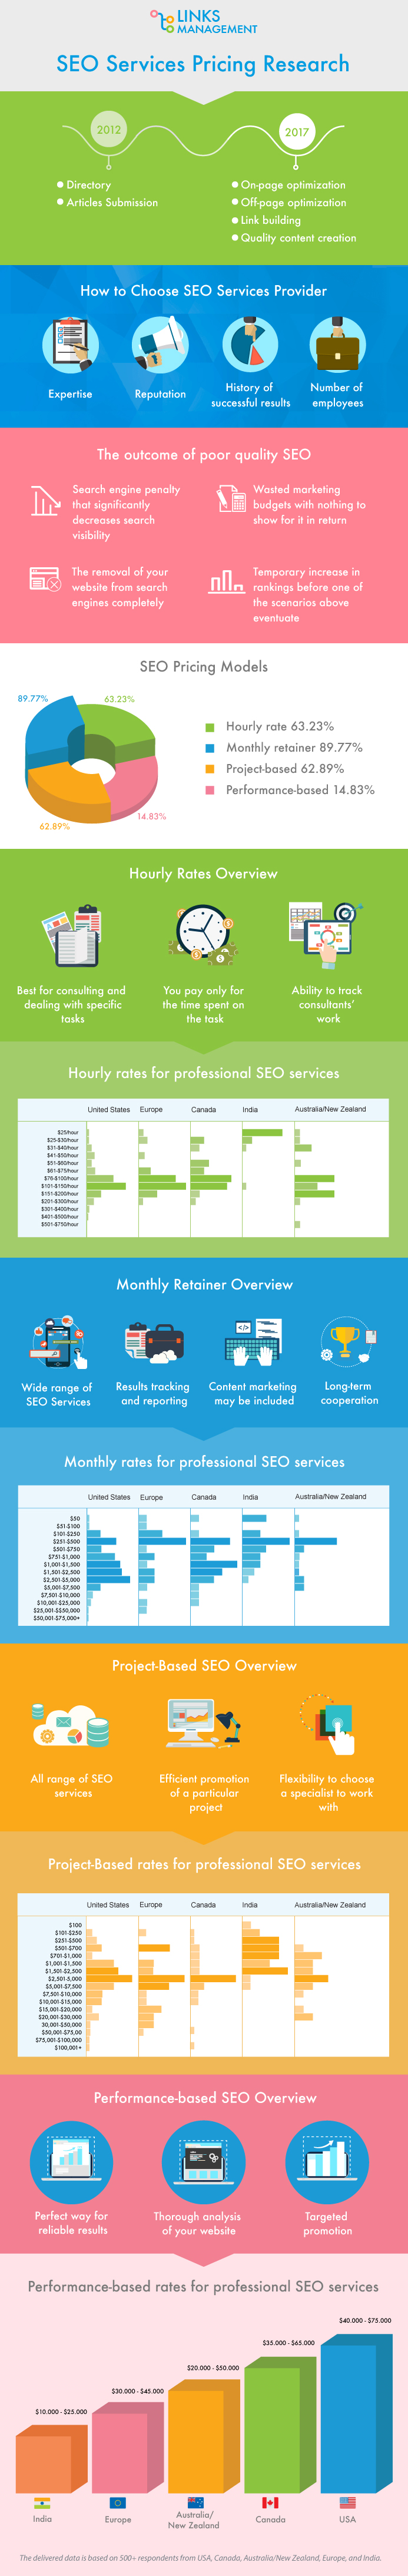 SEO prices in different countries